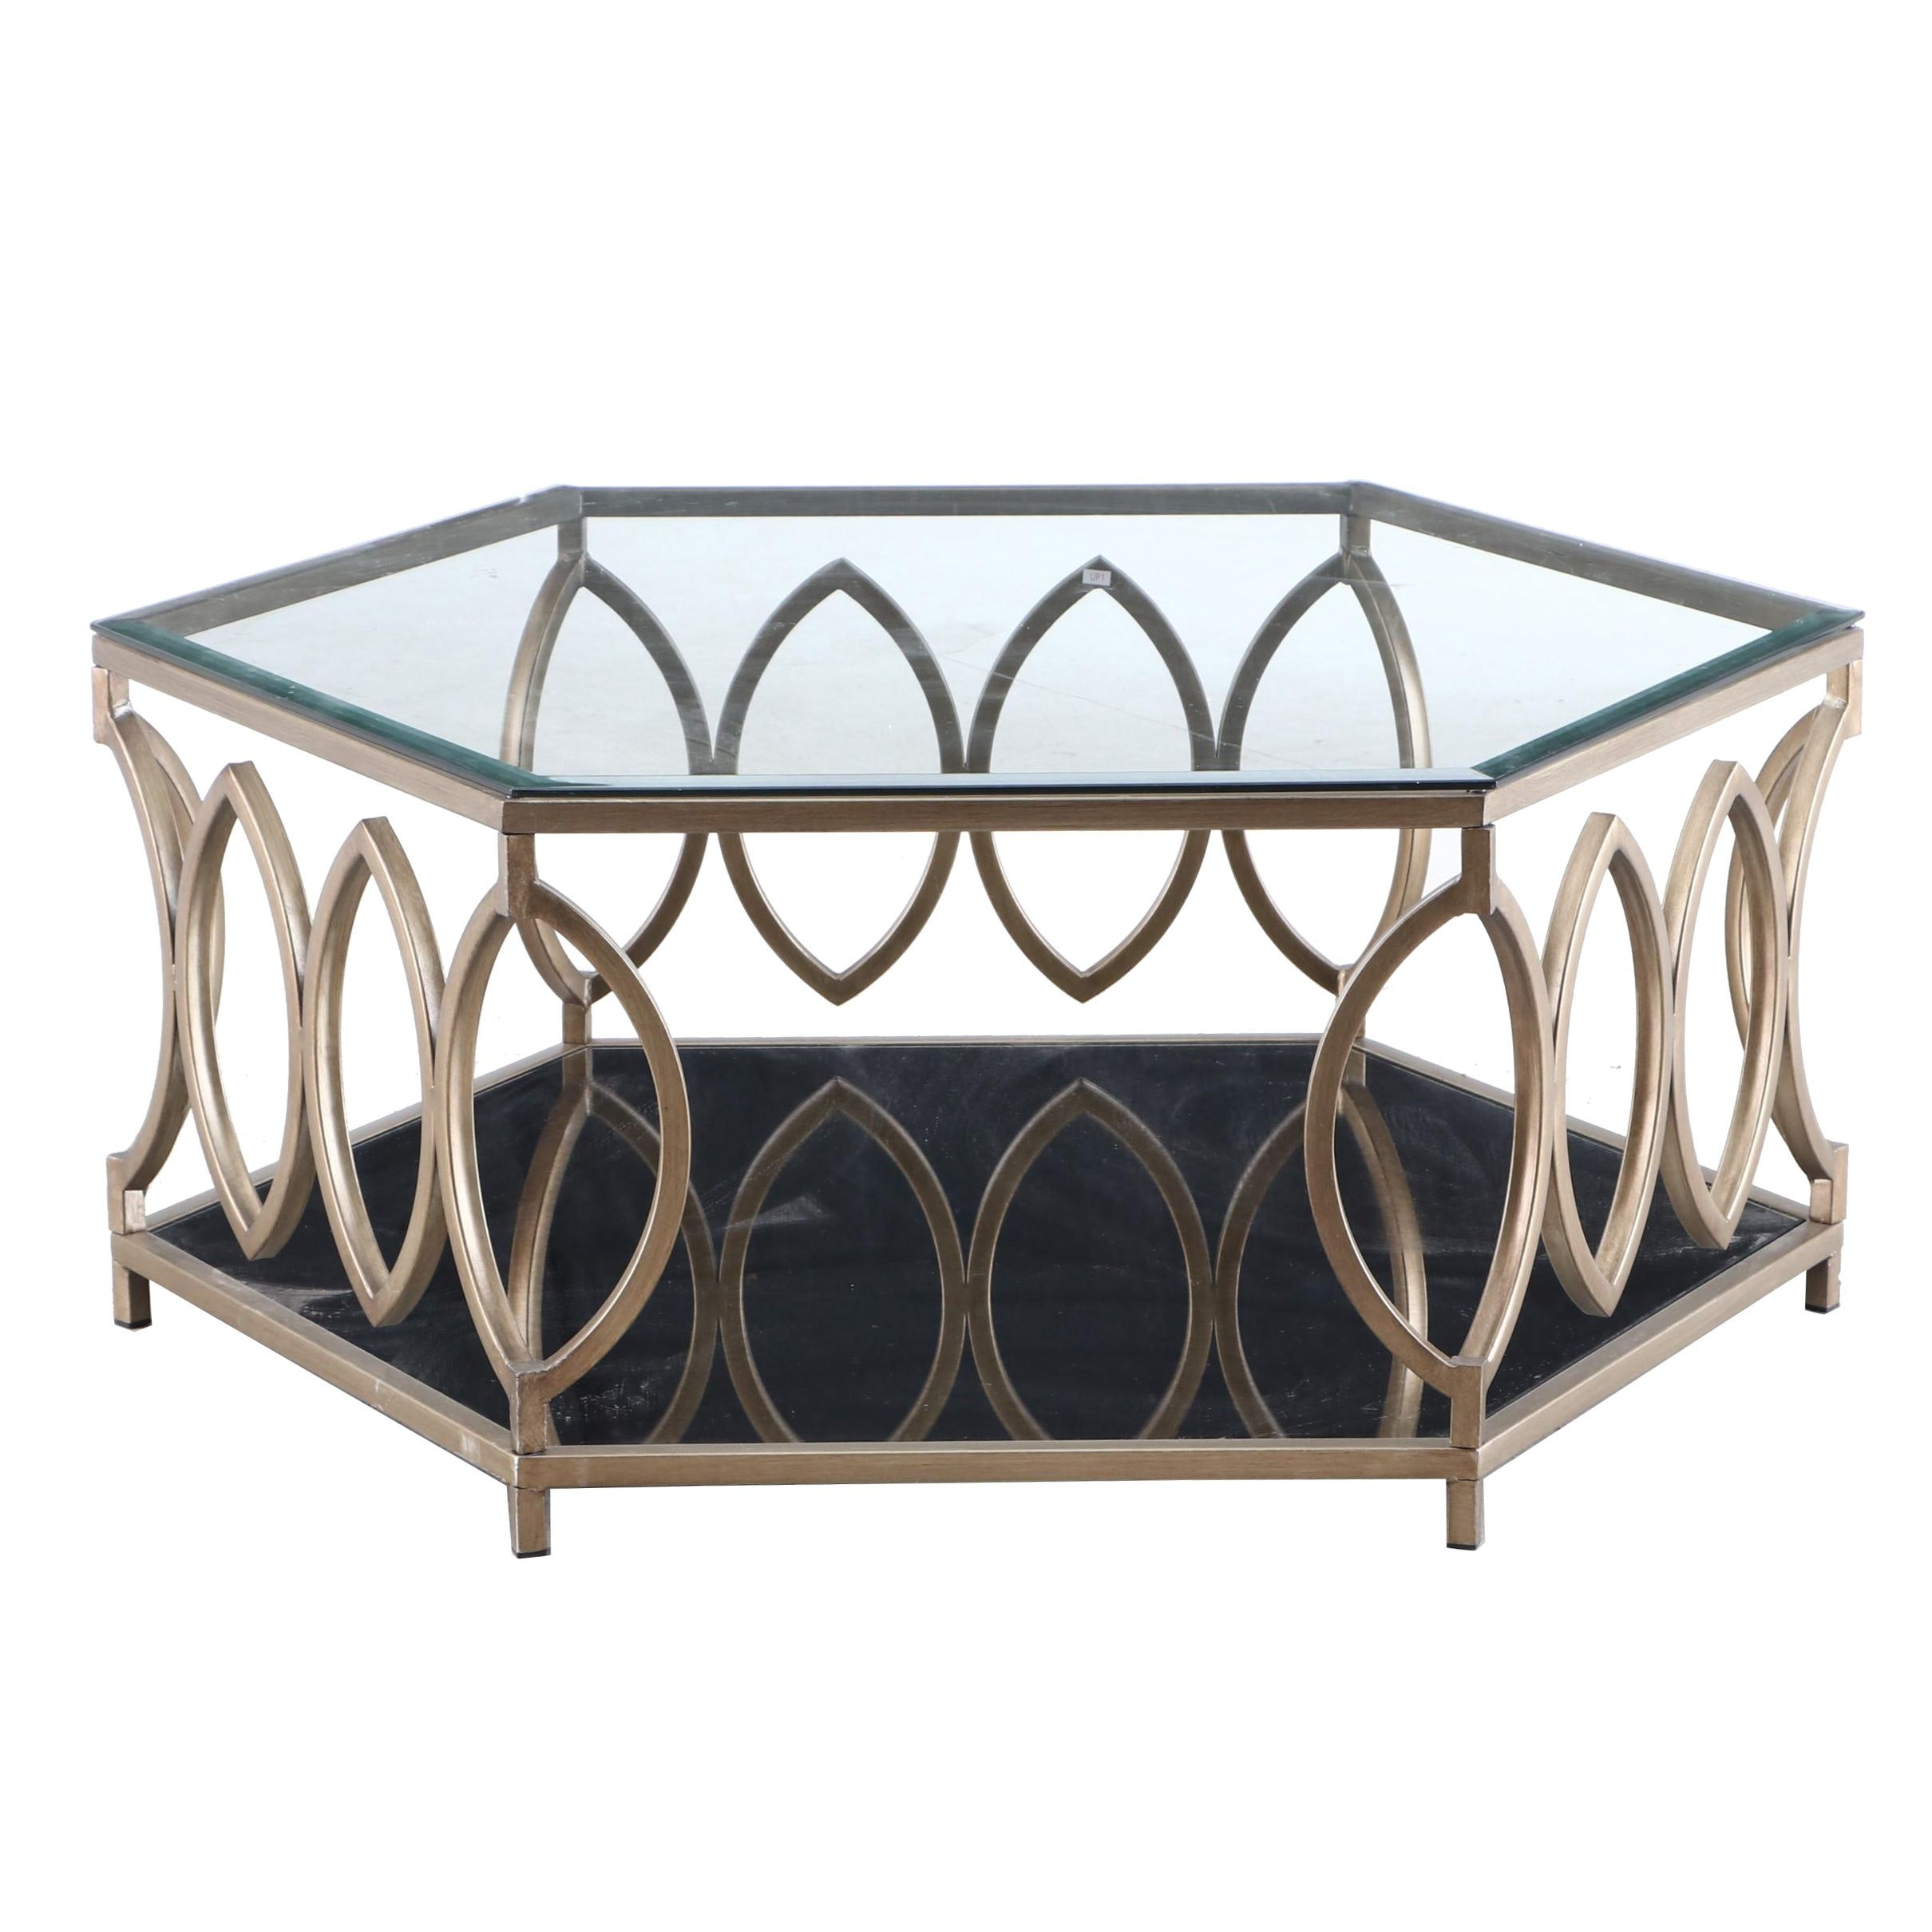 Contemporary Hexagonal Bronze-Tone Metal and Glass Coffee Table